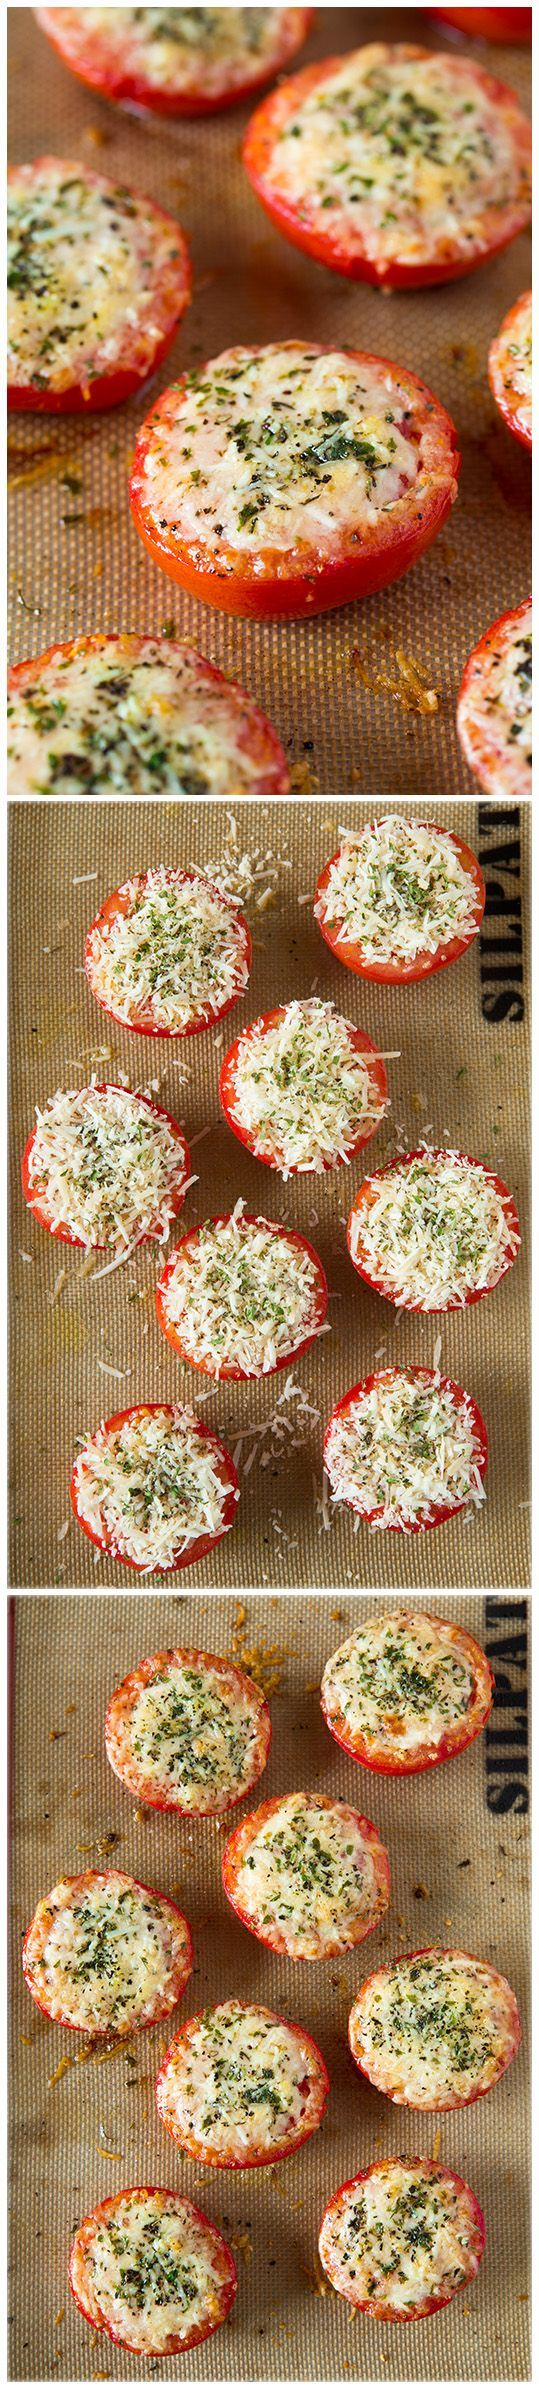 Parmesan and Asiago Cheese Roasted Tomatoes #roasted #tomatoes #appetizers